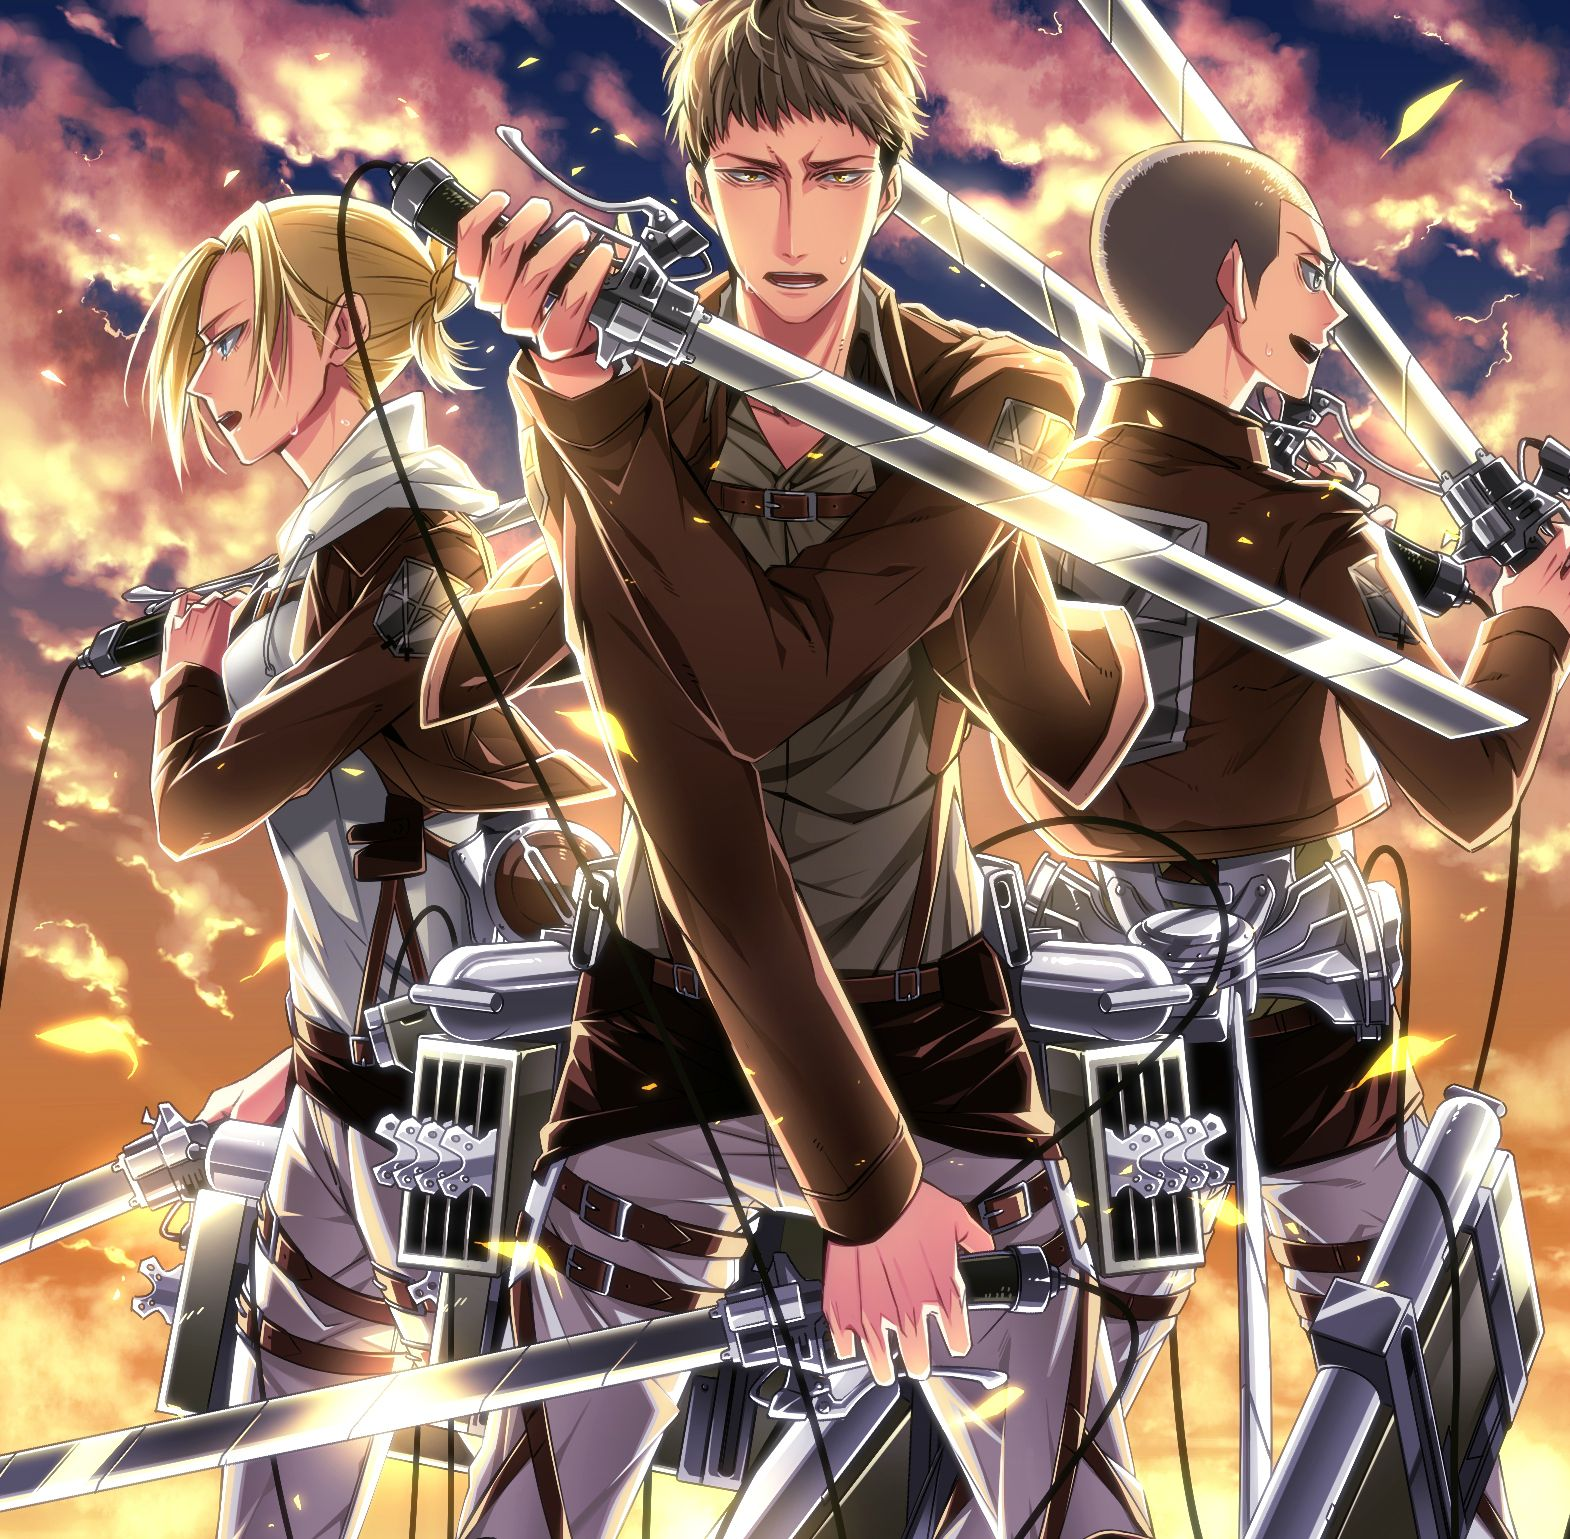 60 Best Attack On Titan Wallpapers Hd 2020 We 7